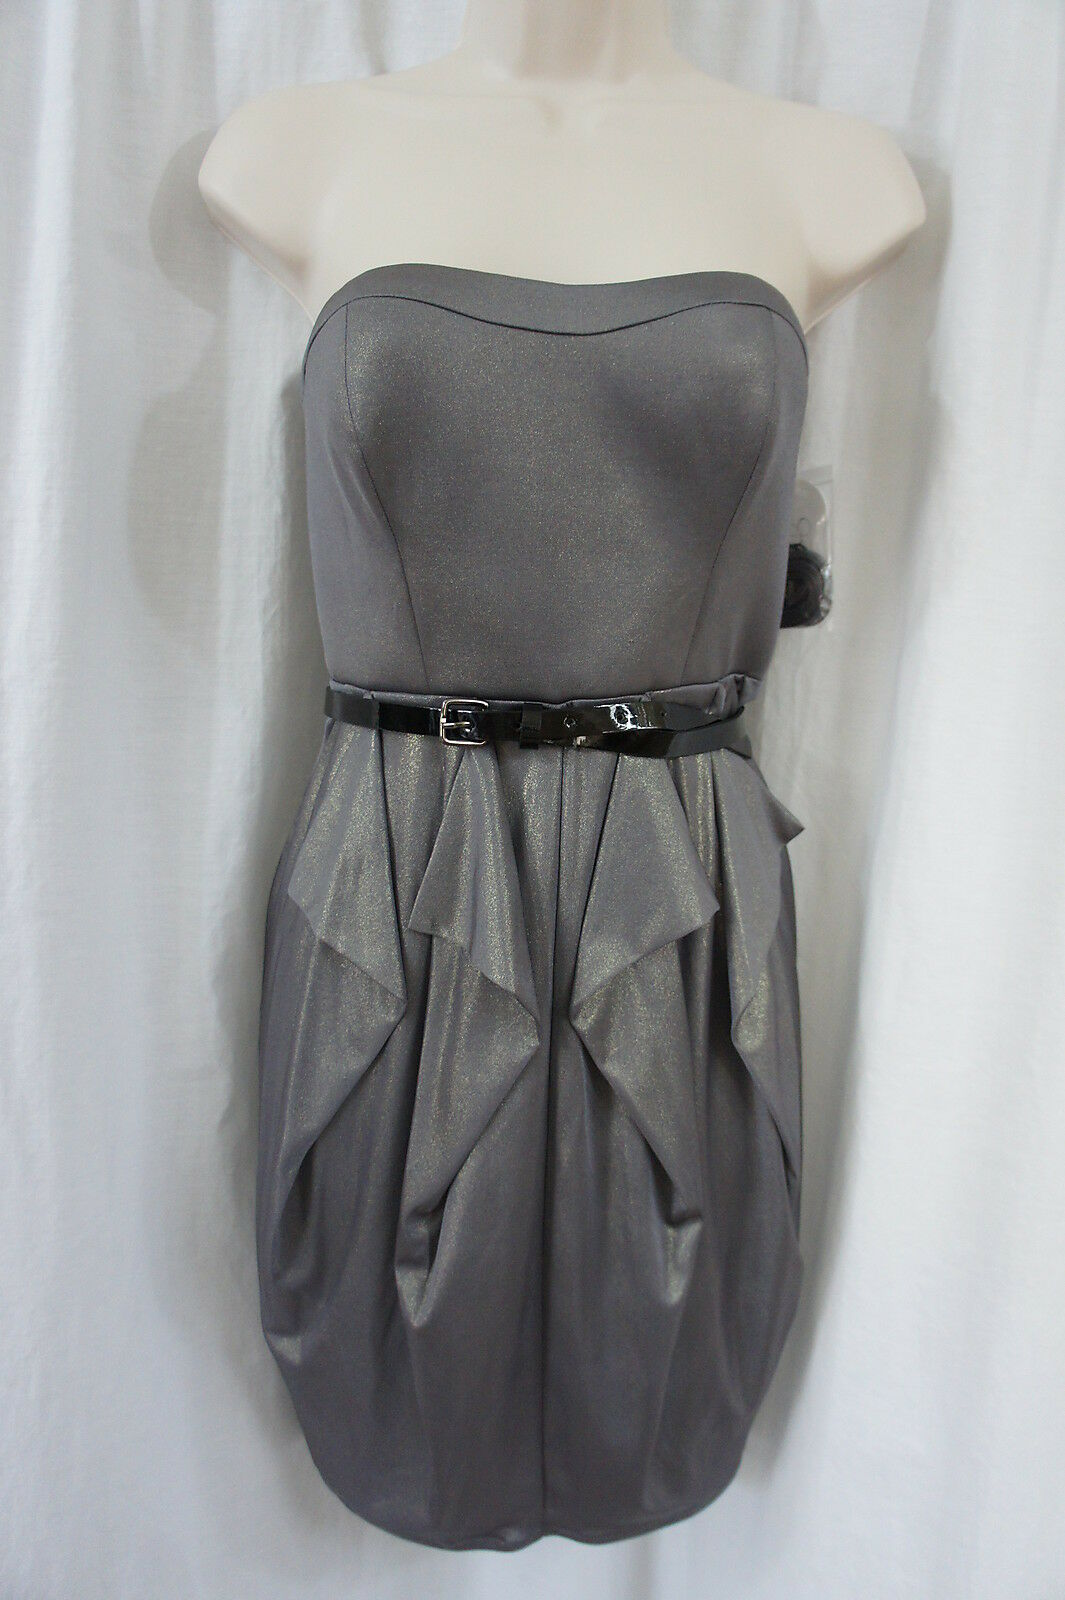 Jessica Simpson Dress Sz 4 Charcoal Gold Strapless Cocktail Party Dinner Dress